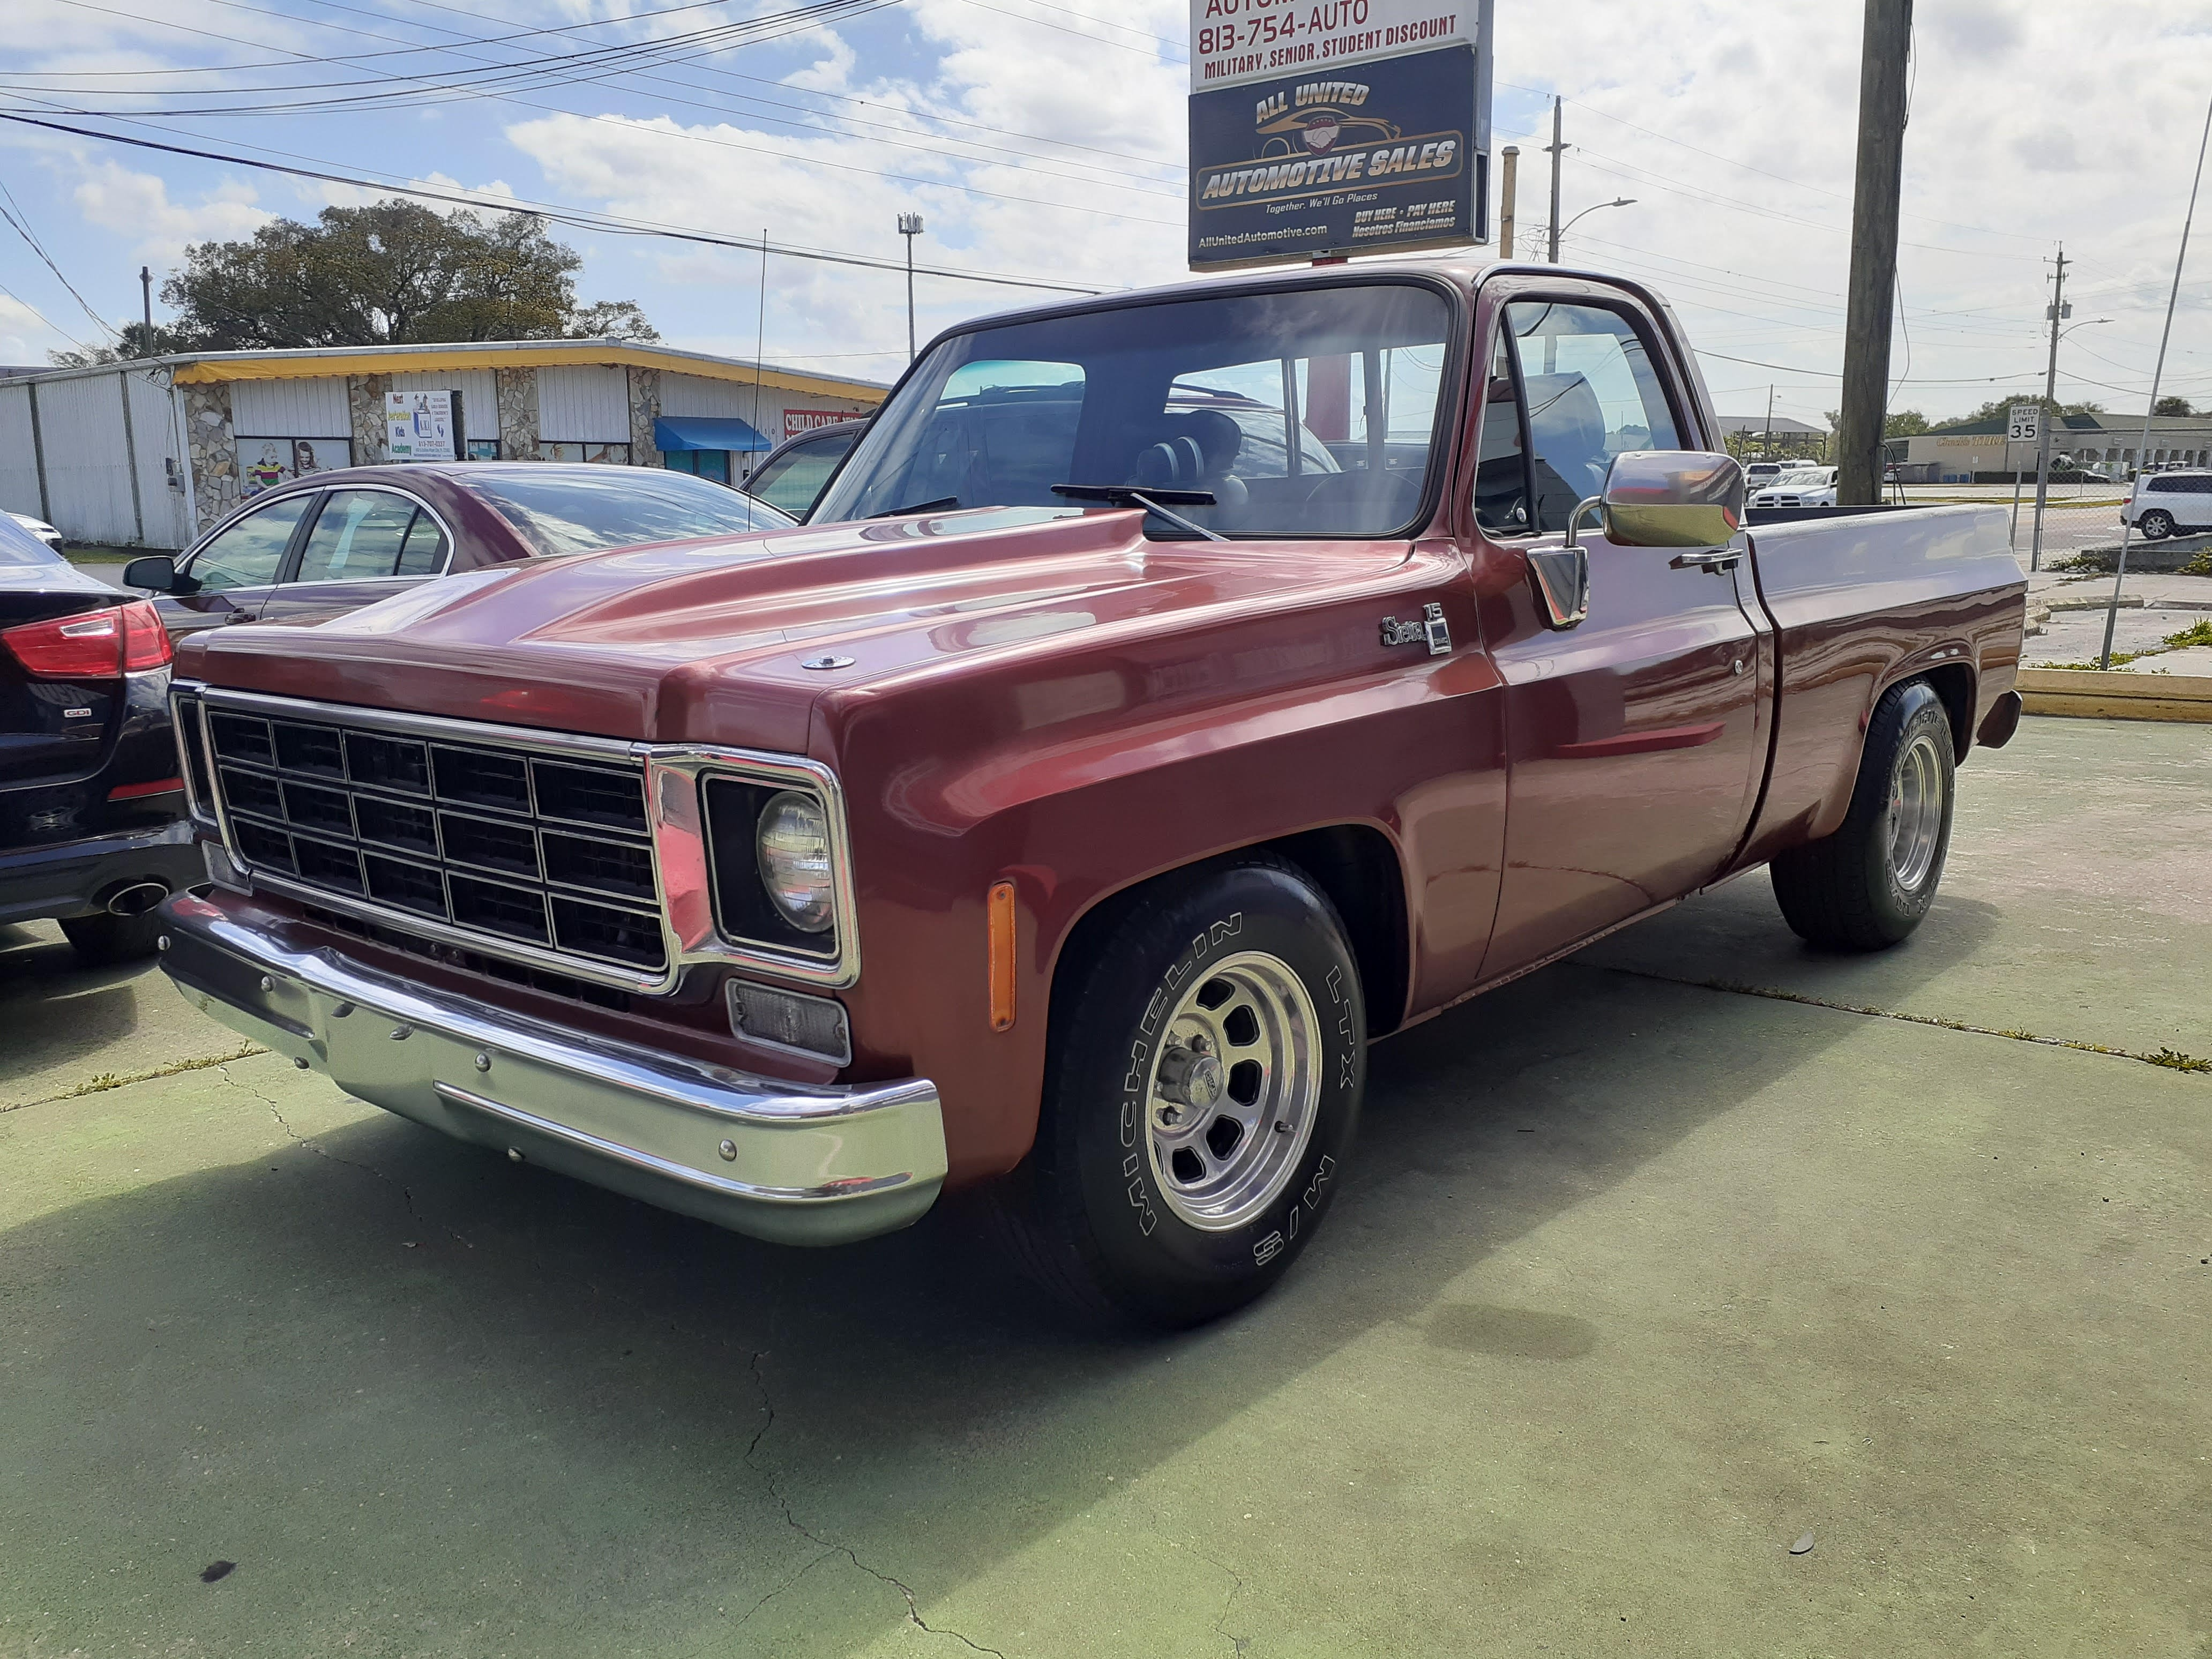 1978 Gmc Sierra All United Automotive Sales Dealership In Plant City